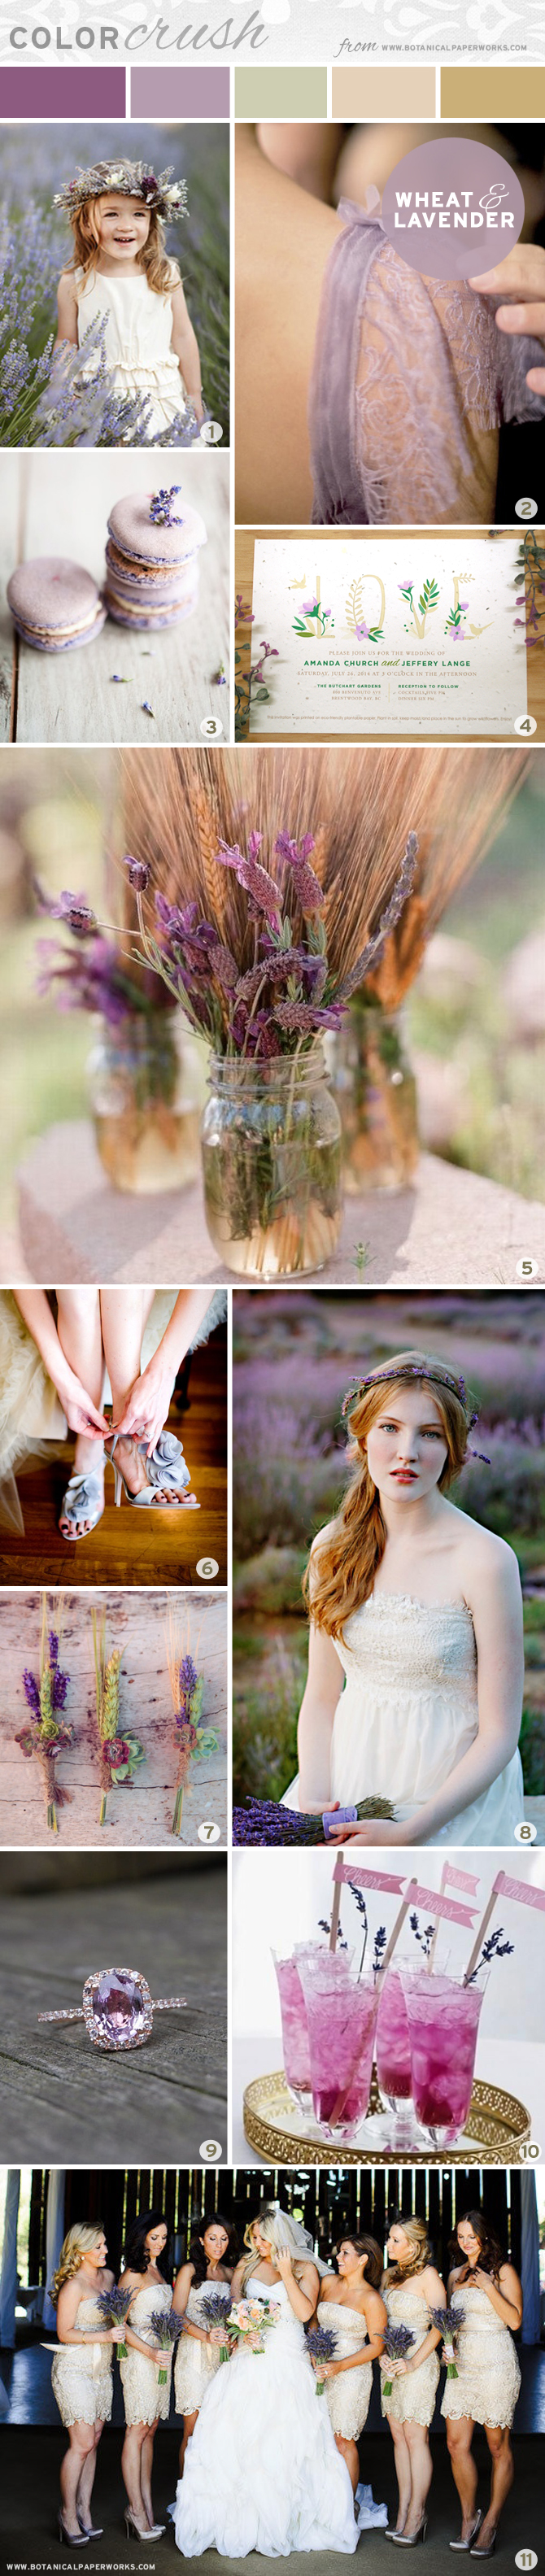 Wheat and Lavender